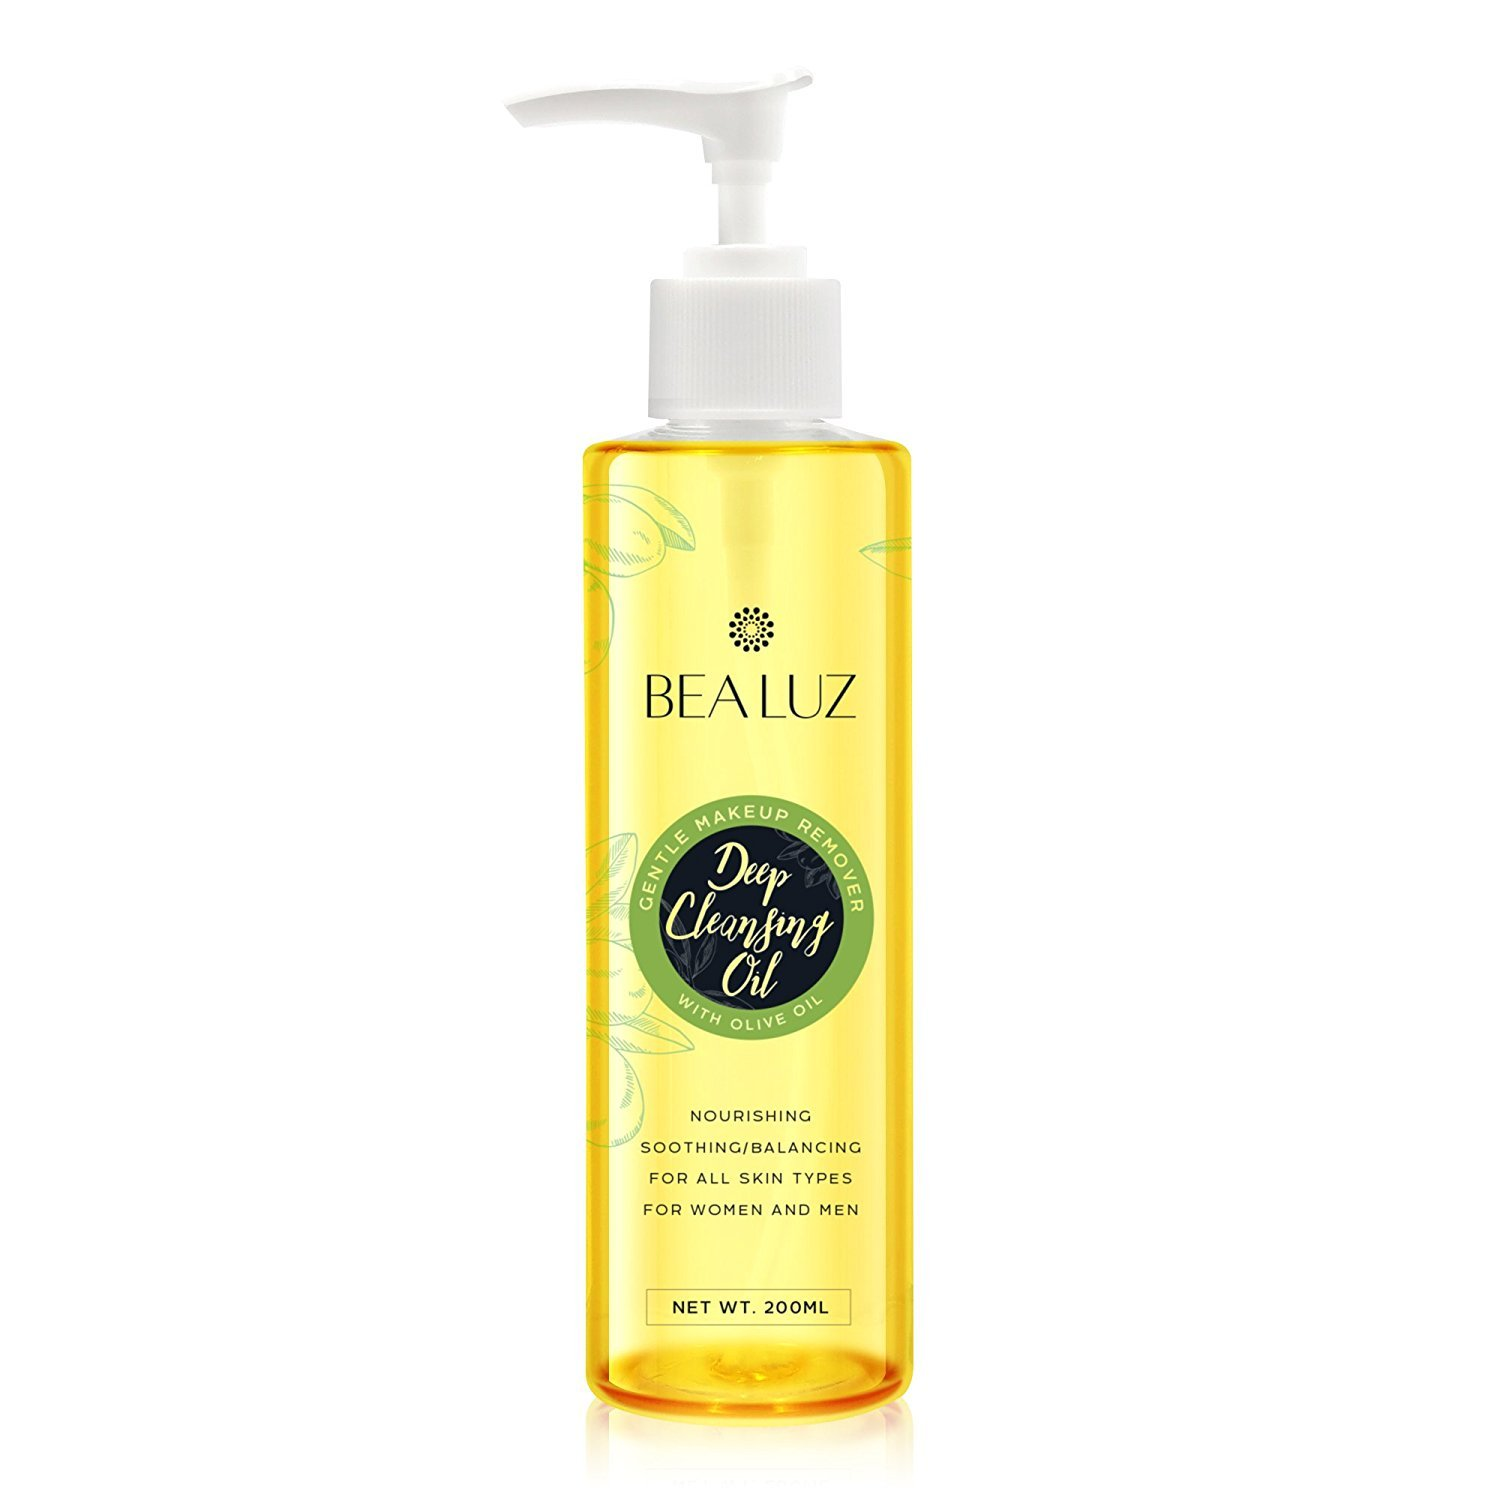 100% Pure & Natural Face & Eye Makeup Remover, Cleansing Oil - Reduces Appearance of Acne Scars & Stretch Marks - Ultra Lightweight